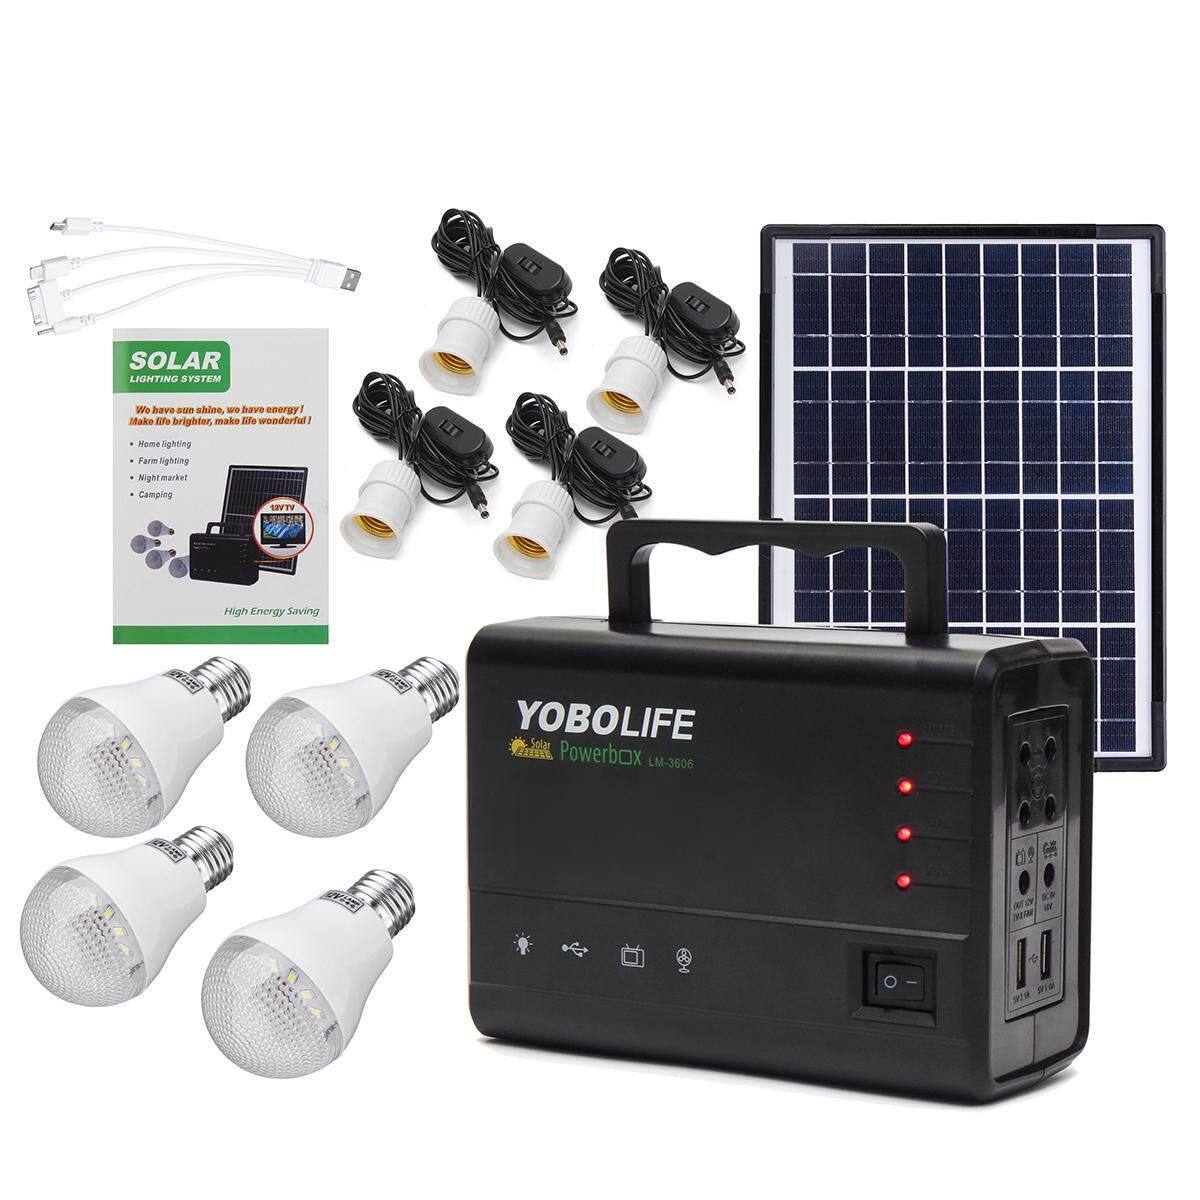 Portable Solar Panels Charging Generator Power System Home Outdoor Lighting - Intl By Freebang.